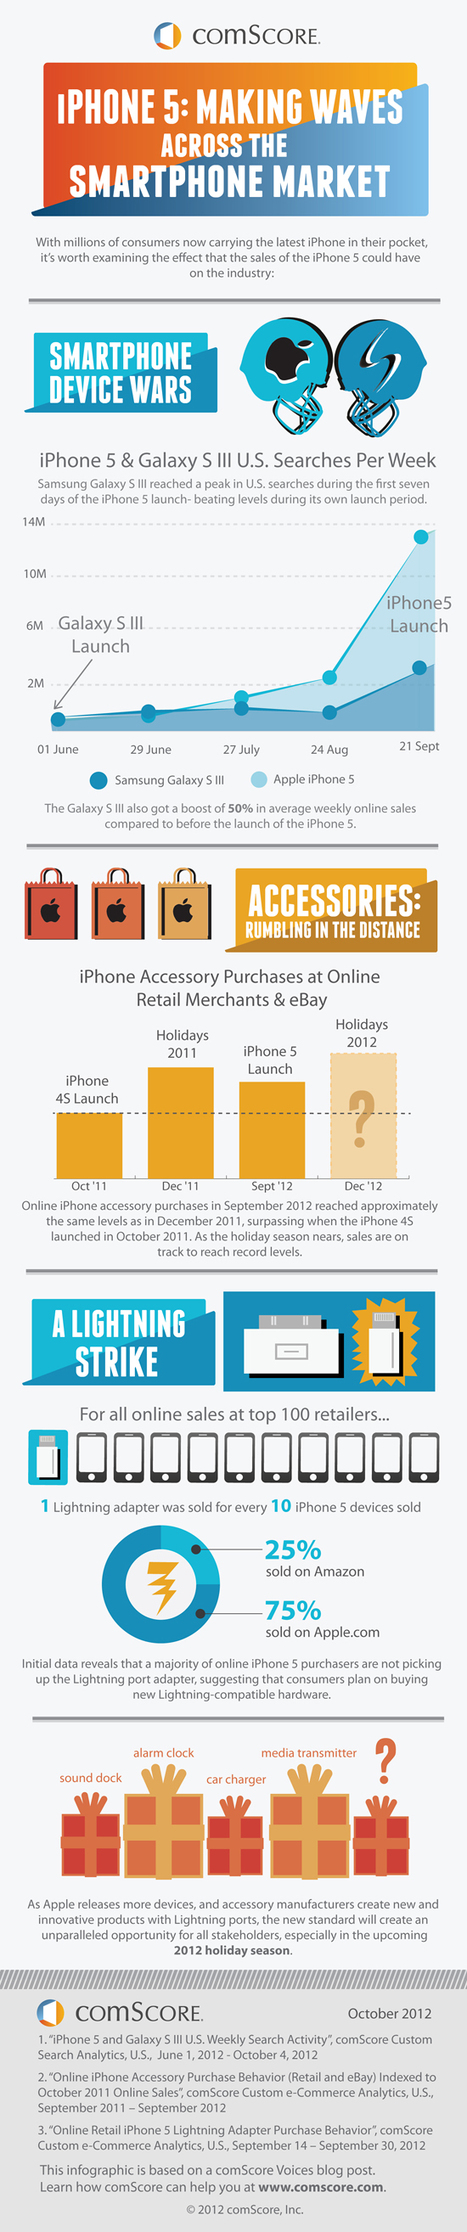 L'impact de l'iPhone 5 sur le marché des smartphones | Actualité IT & Innovation | Scoop.it